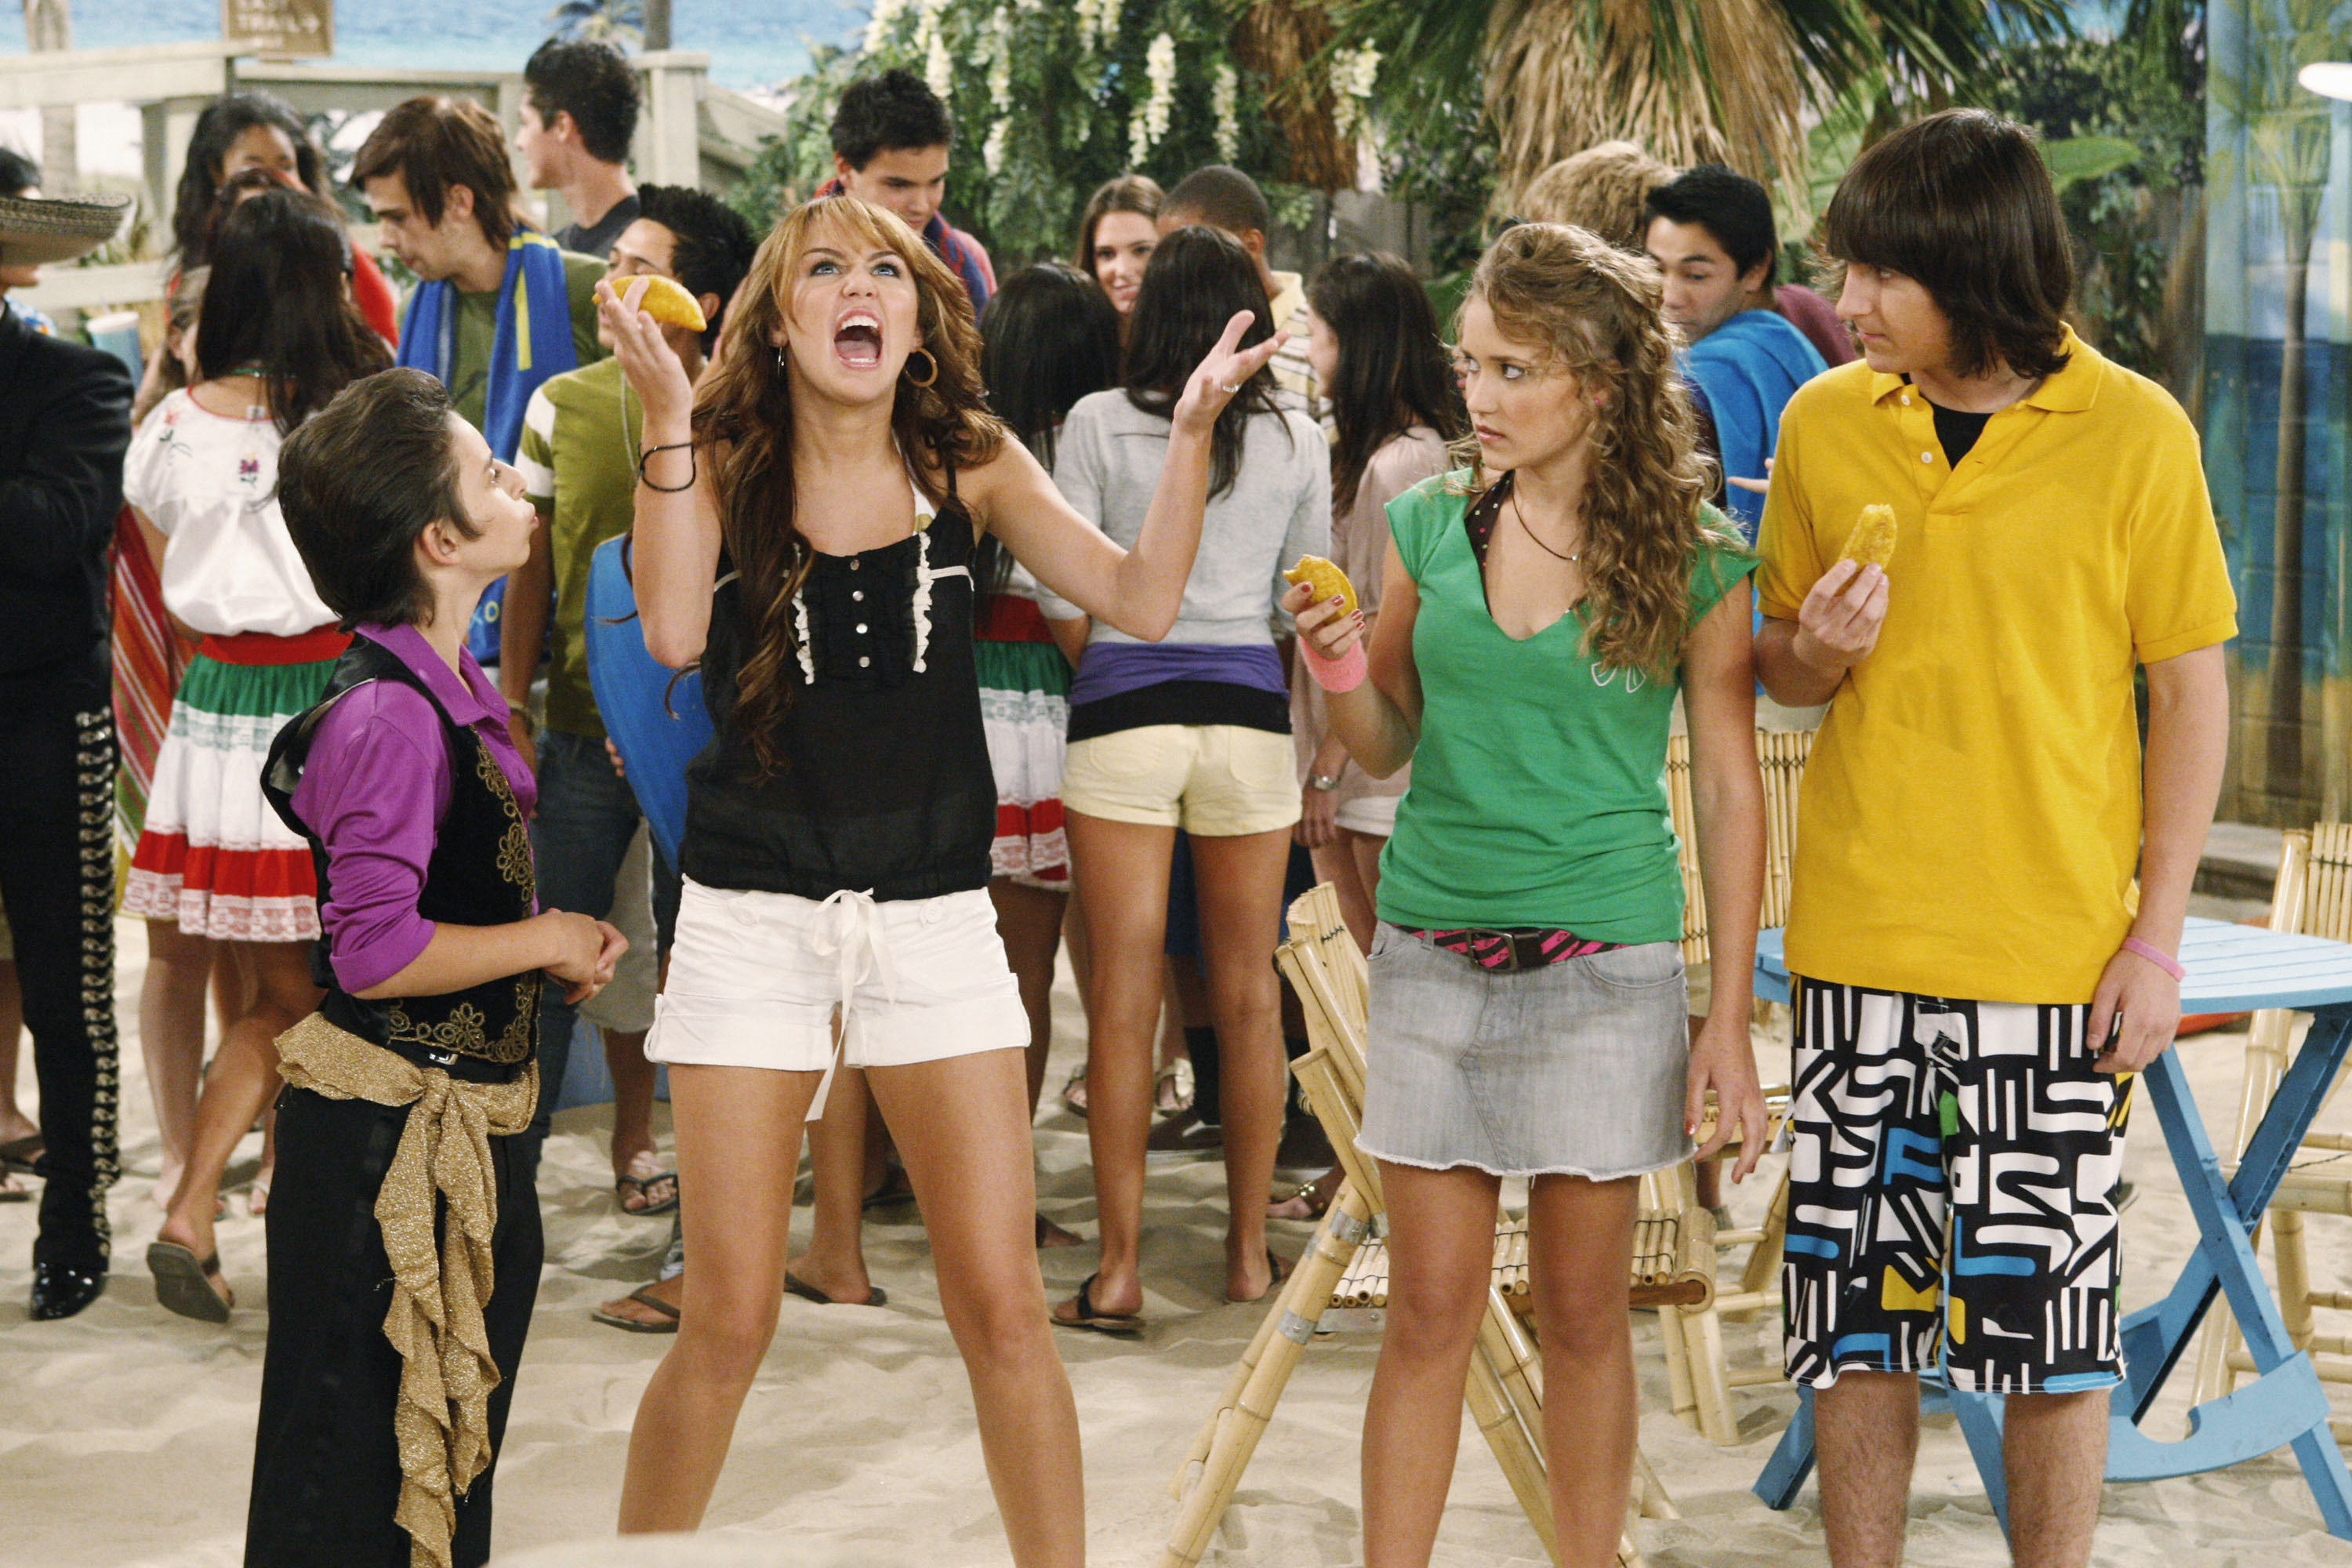 Moises Arias, Emily Osment, and Mitchel Musso watch Miley Cyrus scream on a beach